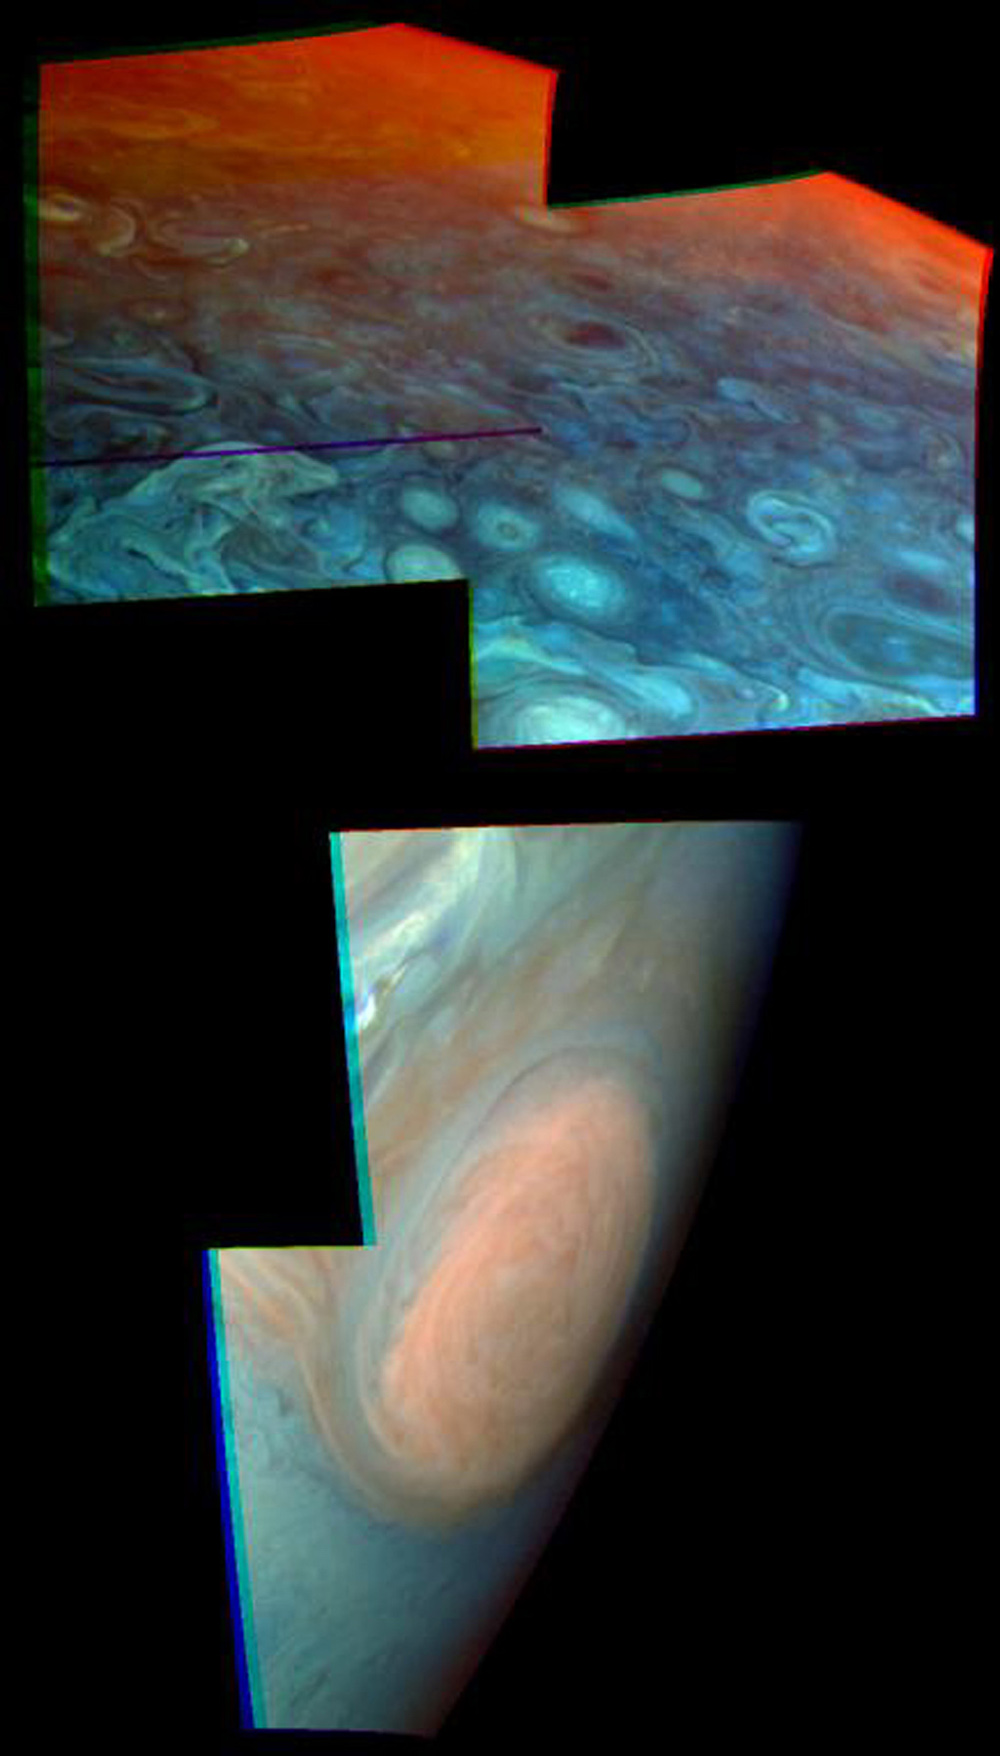 These two views of Jupiter obtained by NASA's Galileo spacecraft show evidence of strikingly different stratospheric hazes between the polar regions and low or mid latitudes. The Great Red Spot shows in one mosaic taken on June 26, 1996.